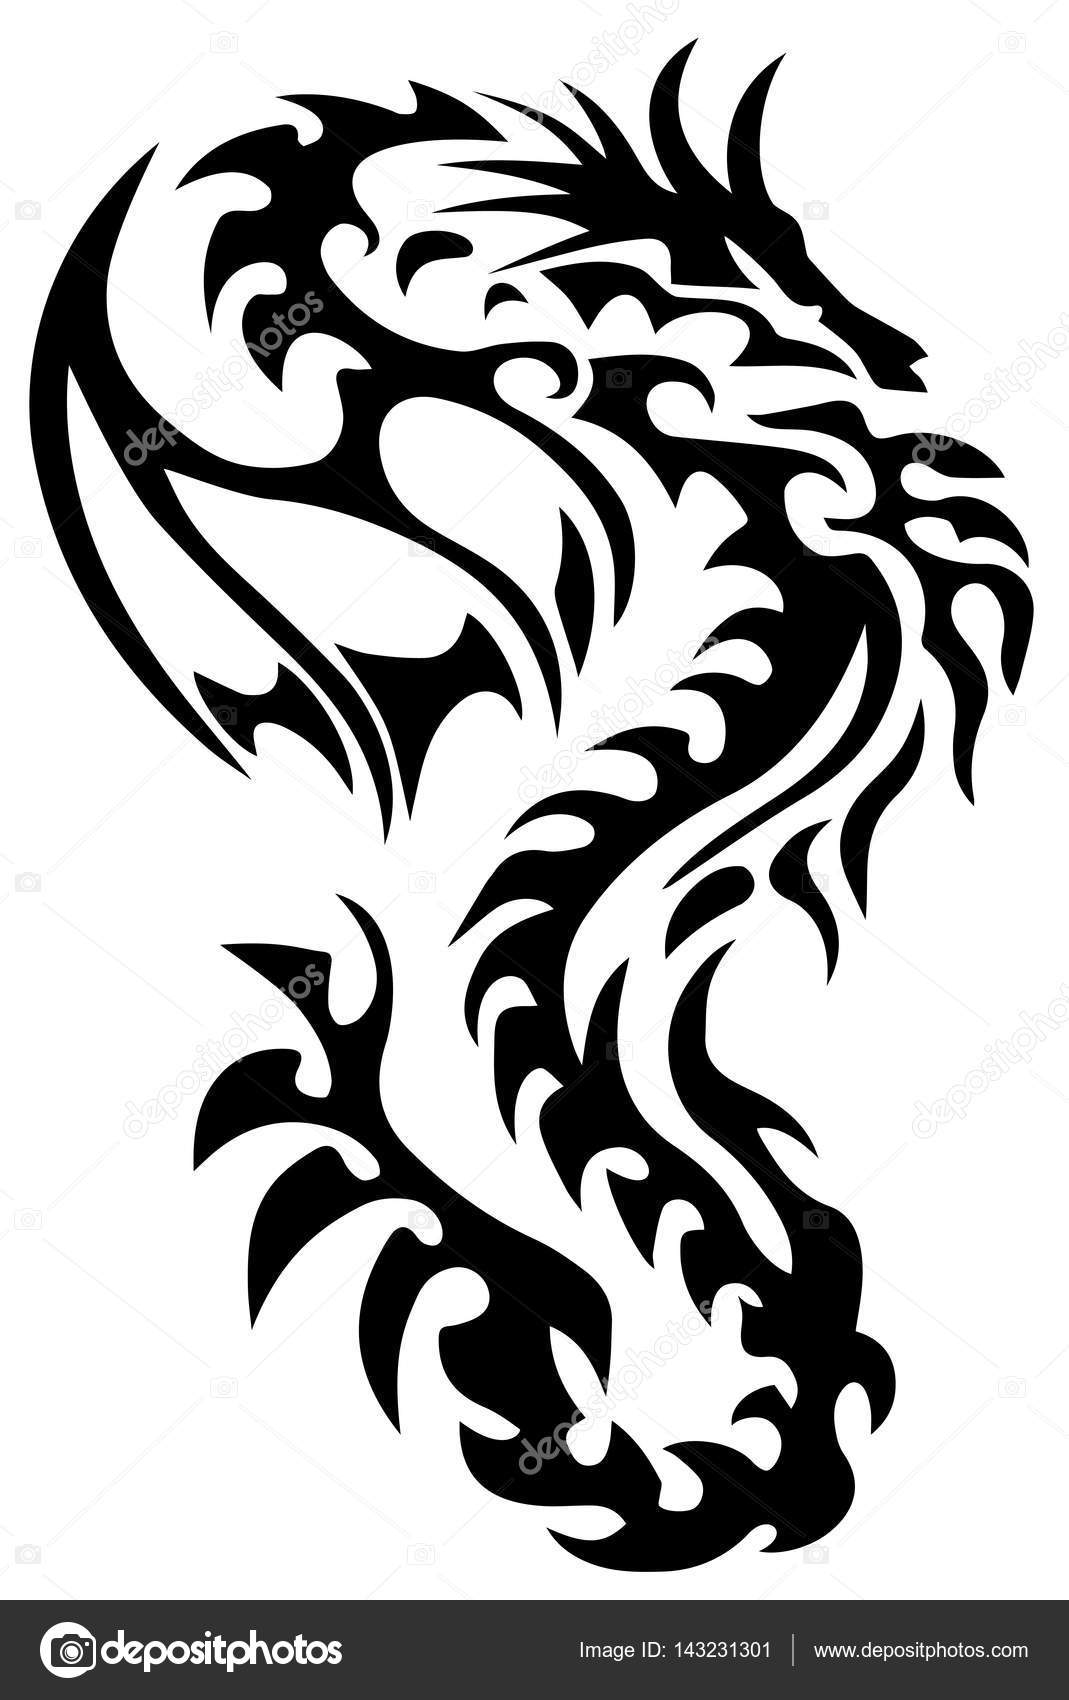 1069x1700 Dragon Tattoo Tribal Dragon Black And White Dragon Tattoo Eps 10